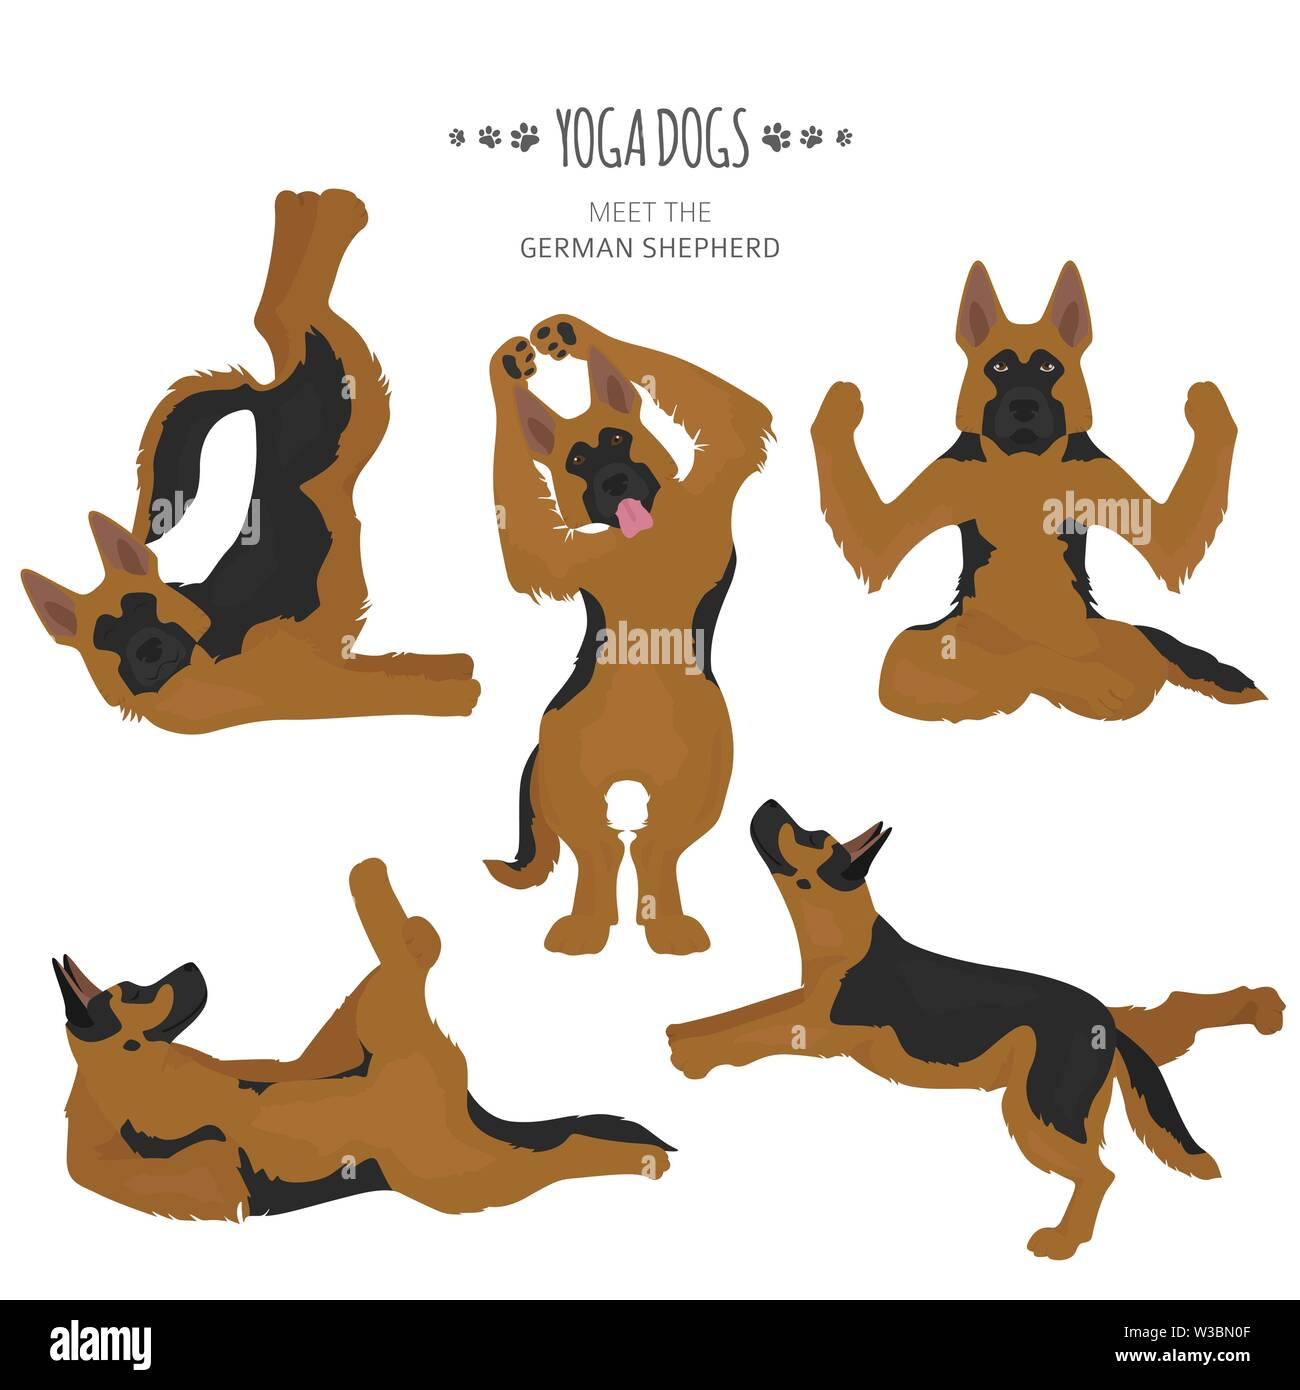 Yoga dogs poses and exercises. German shepherd clipart. Vector illustration - Stock Vector